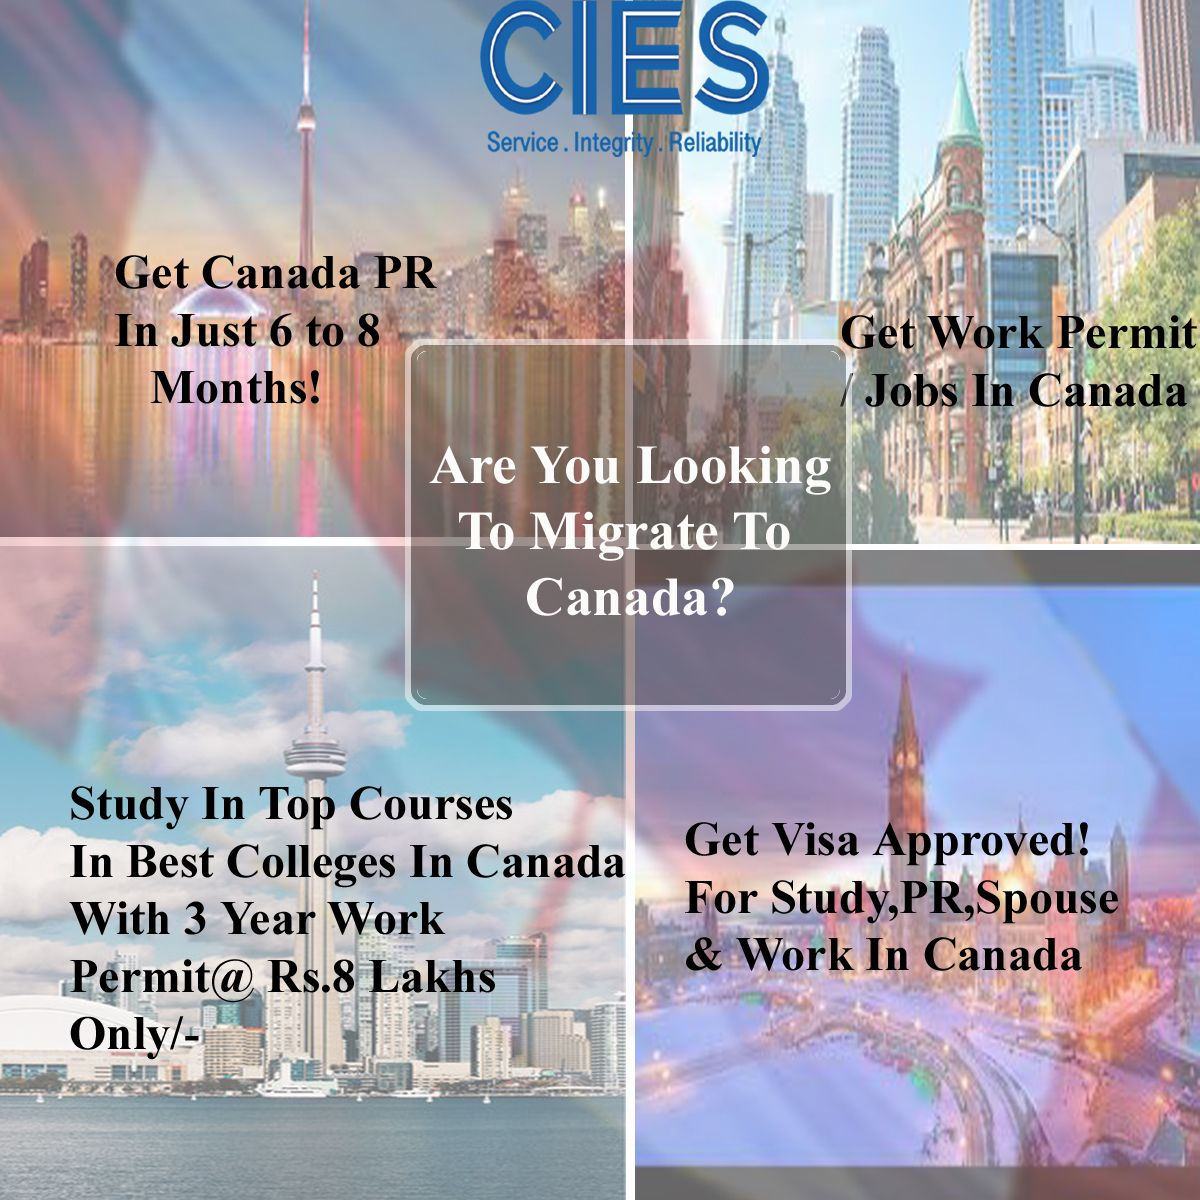 Live up your dream with CIES for Study, Work & Stay In